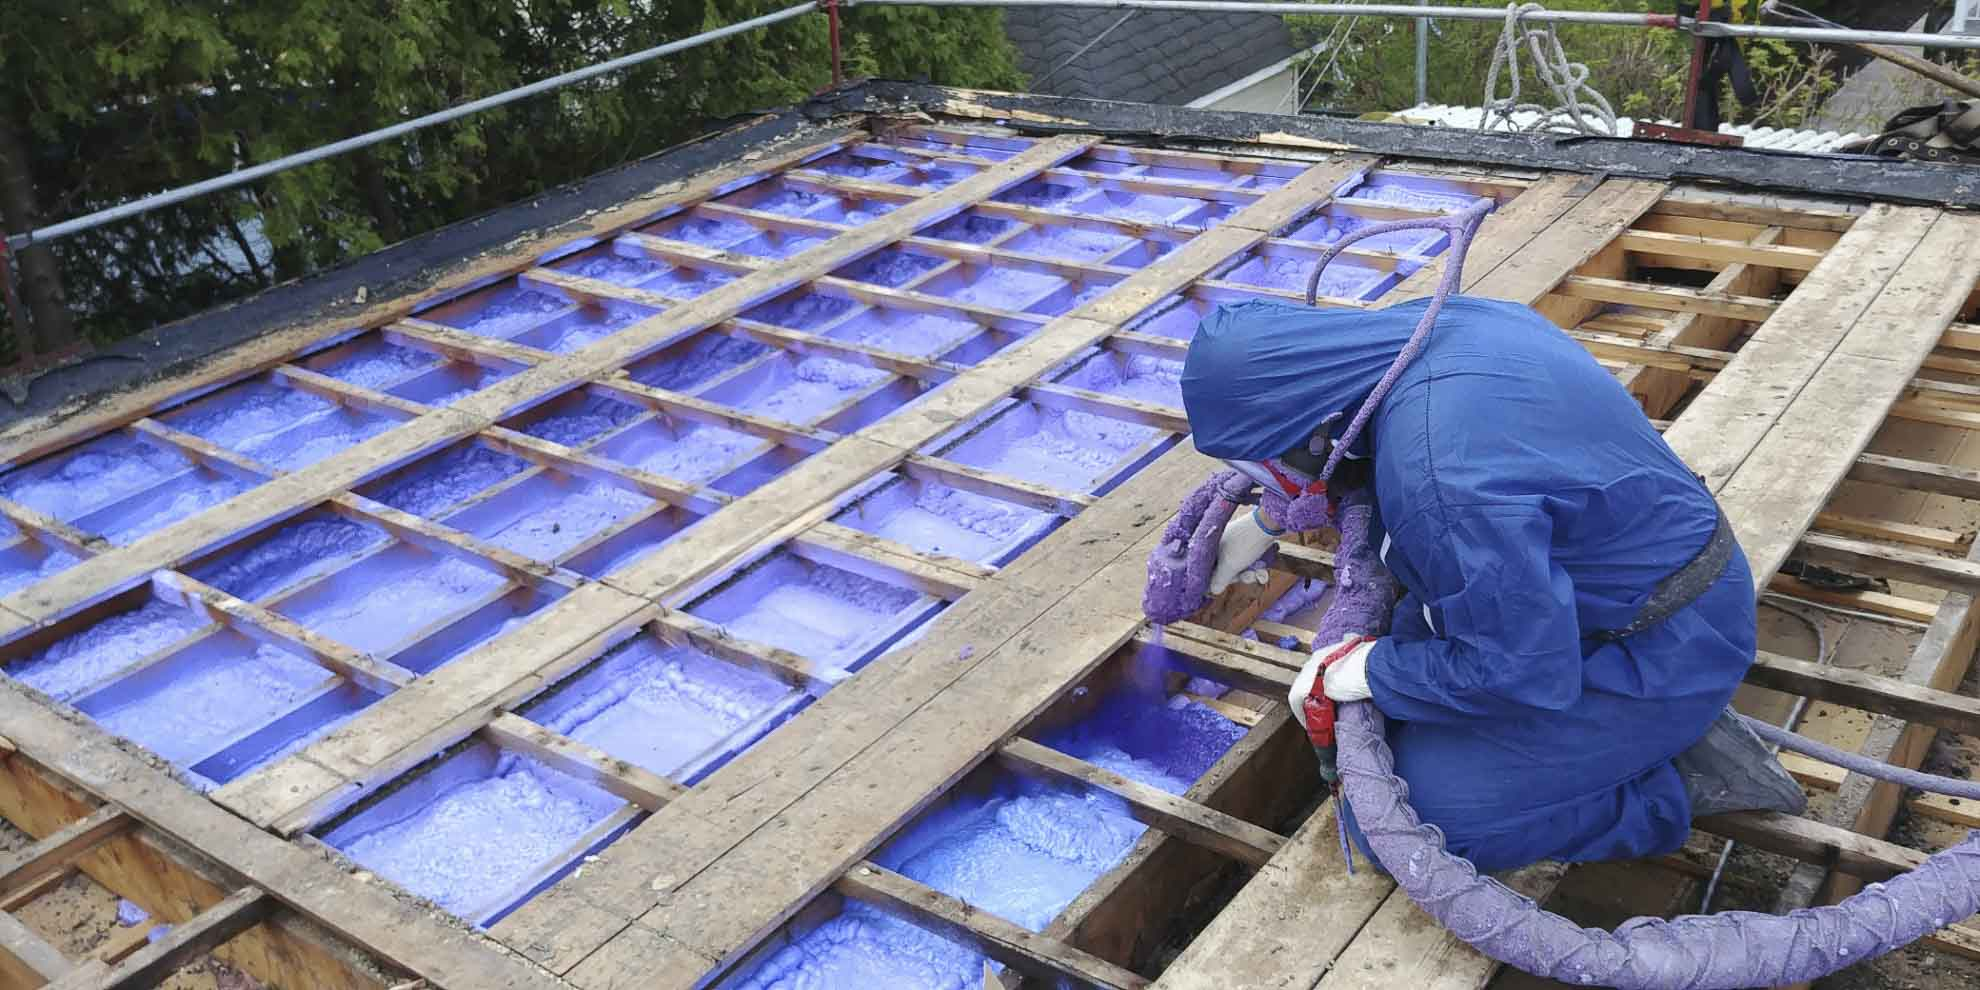 Urethane injection inside of the attic structure for proper insulation